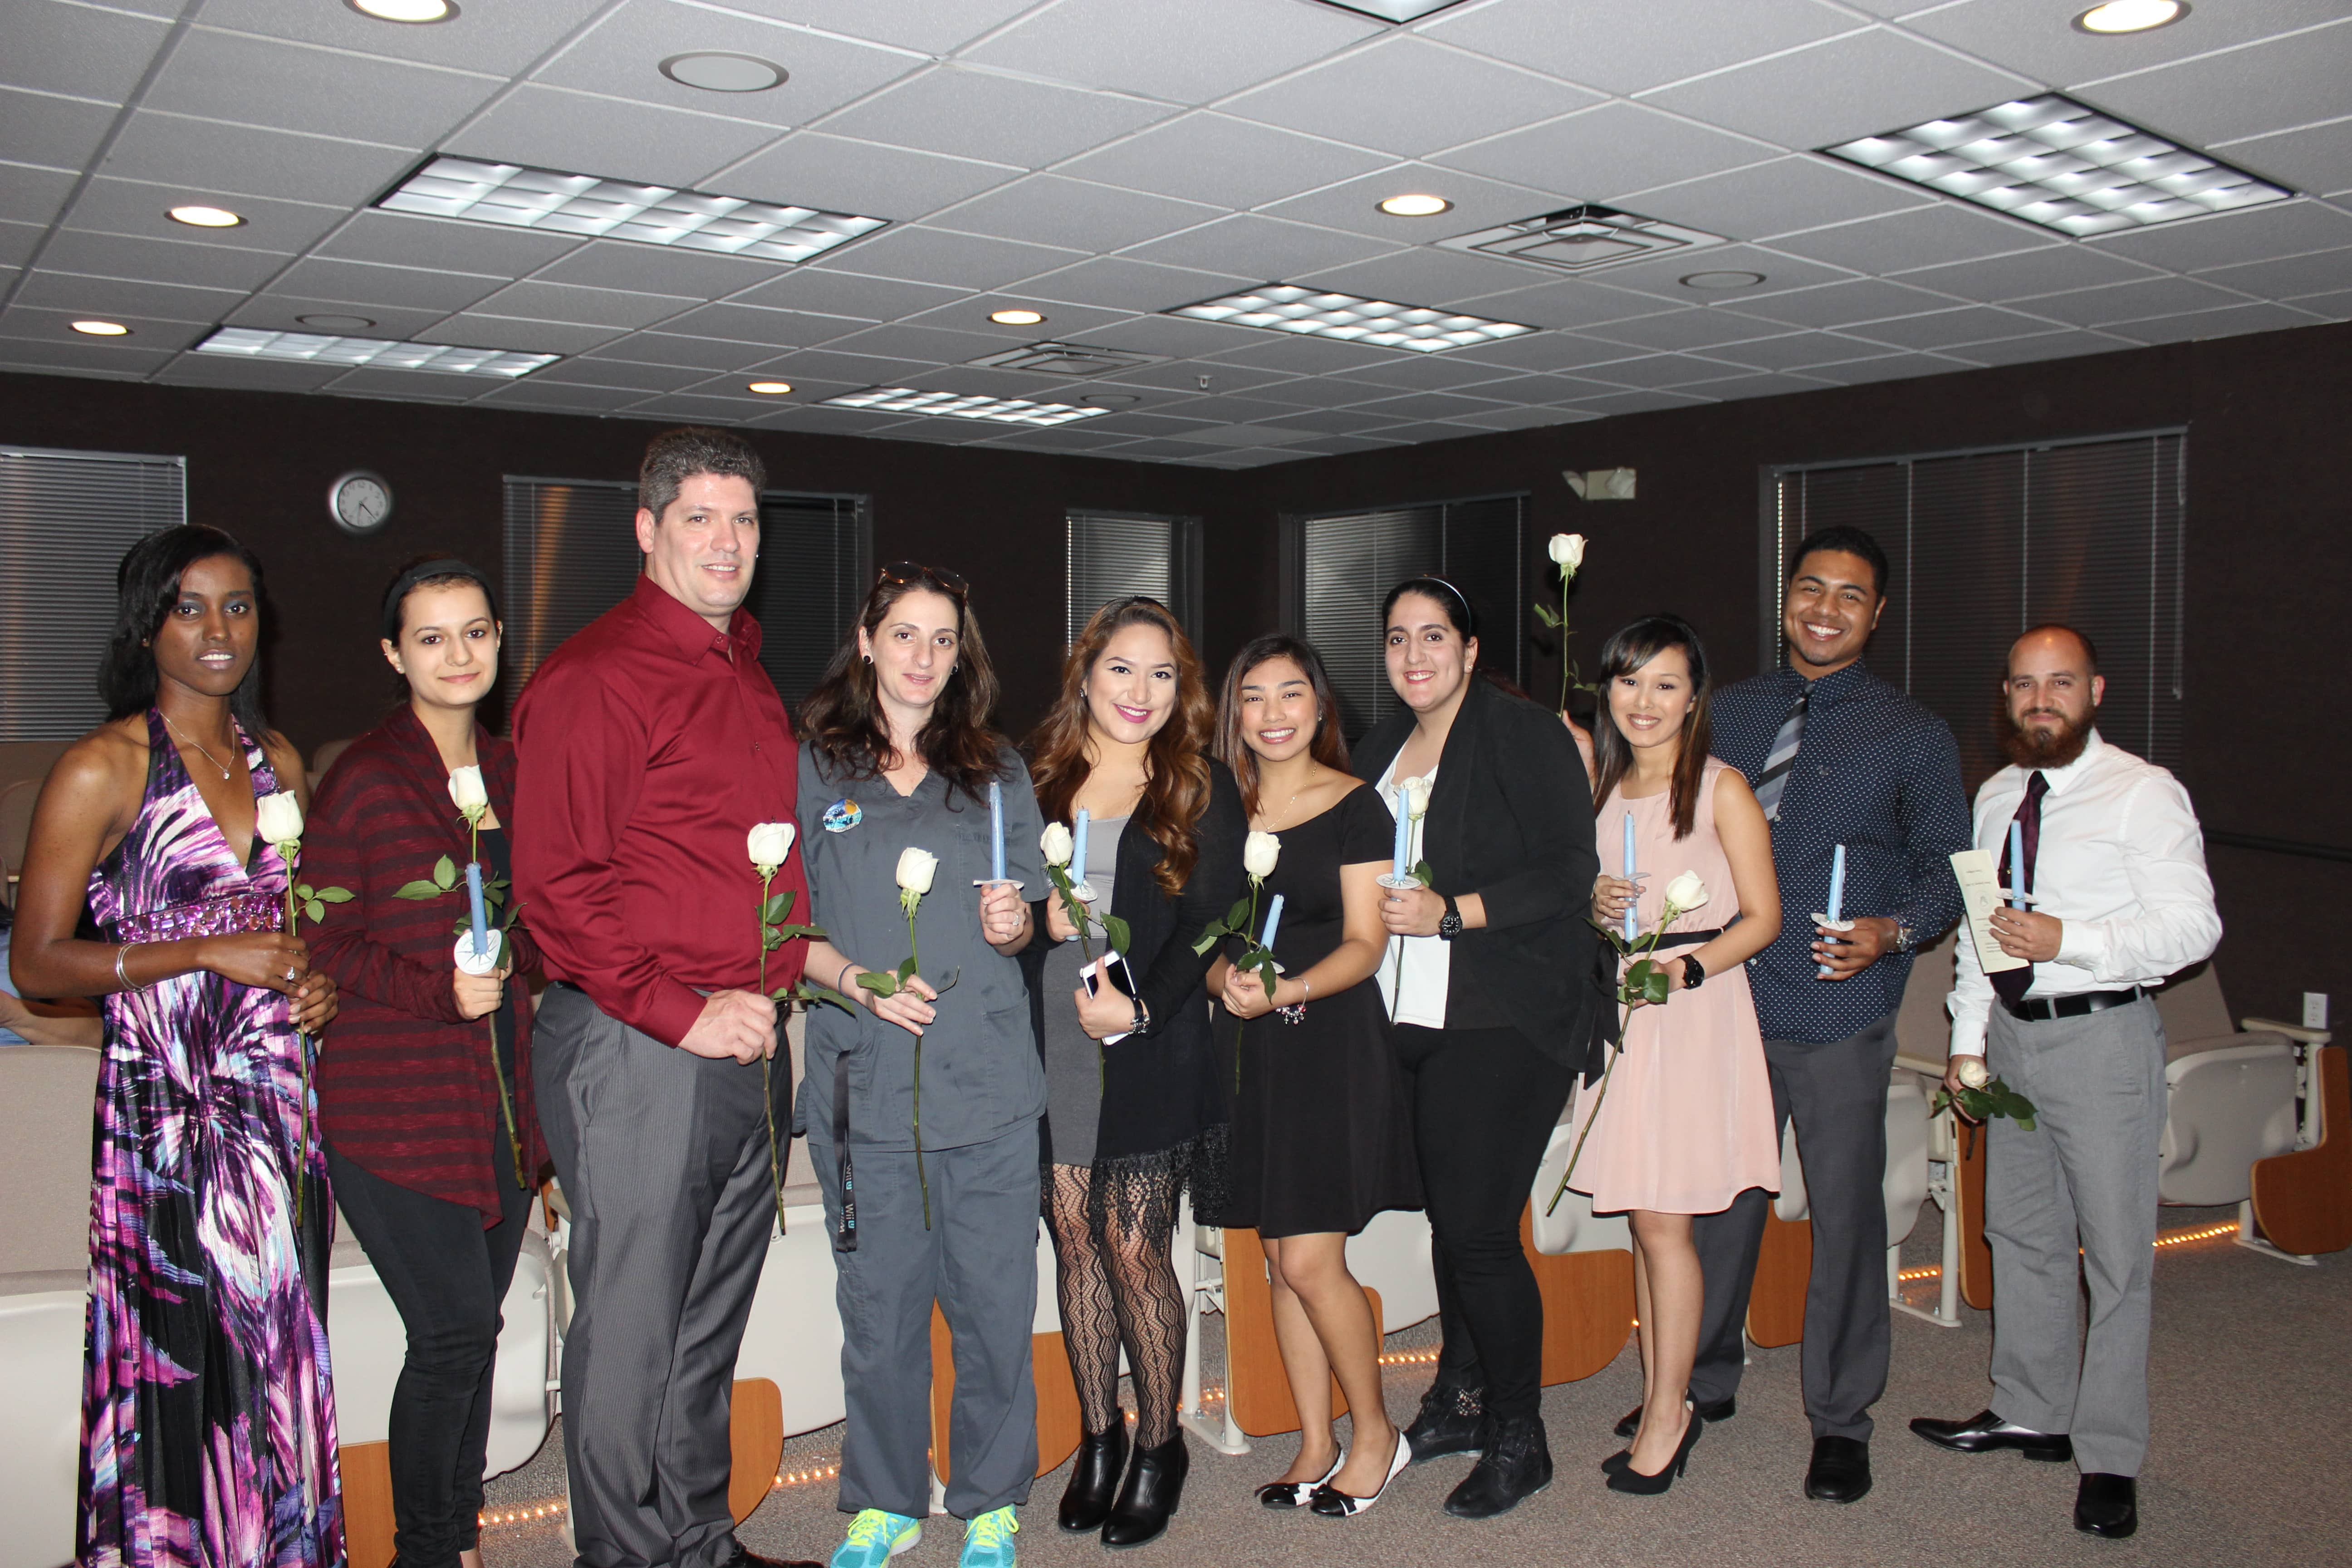 West Palm Beach Inducts New PTK Members